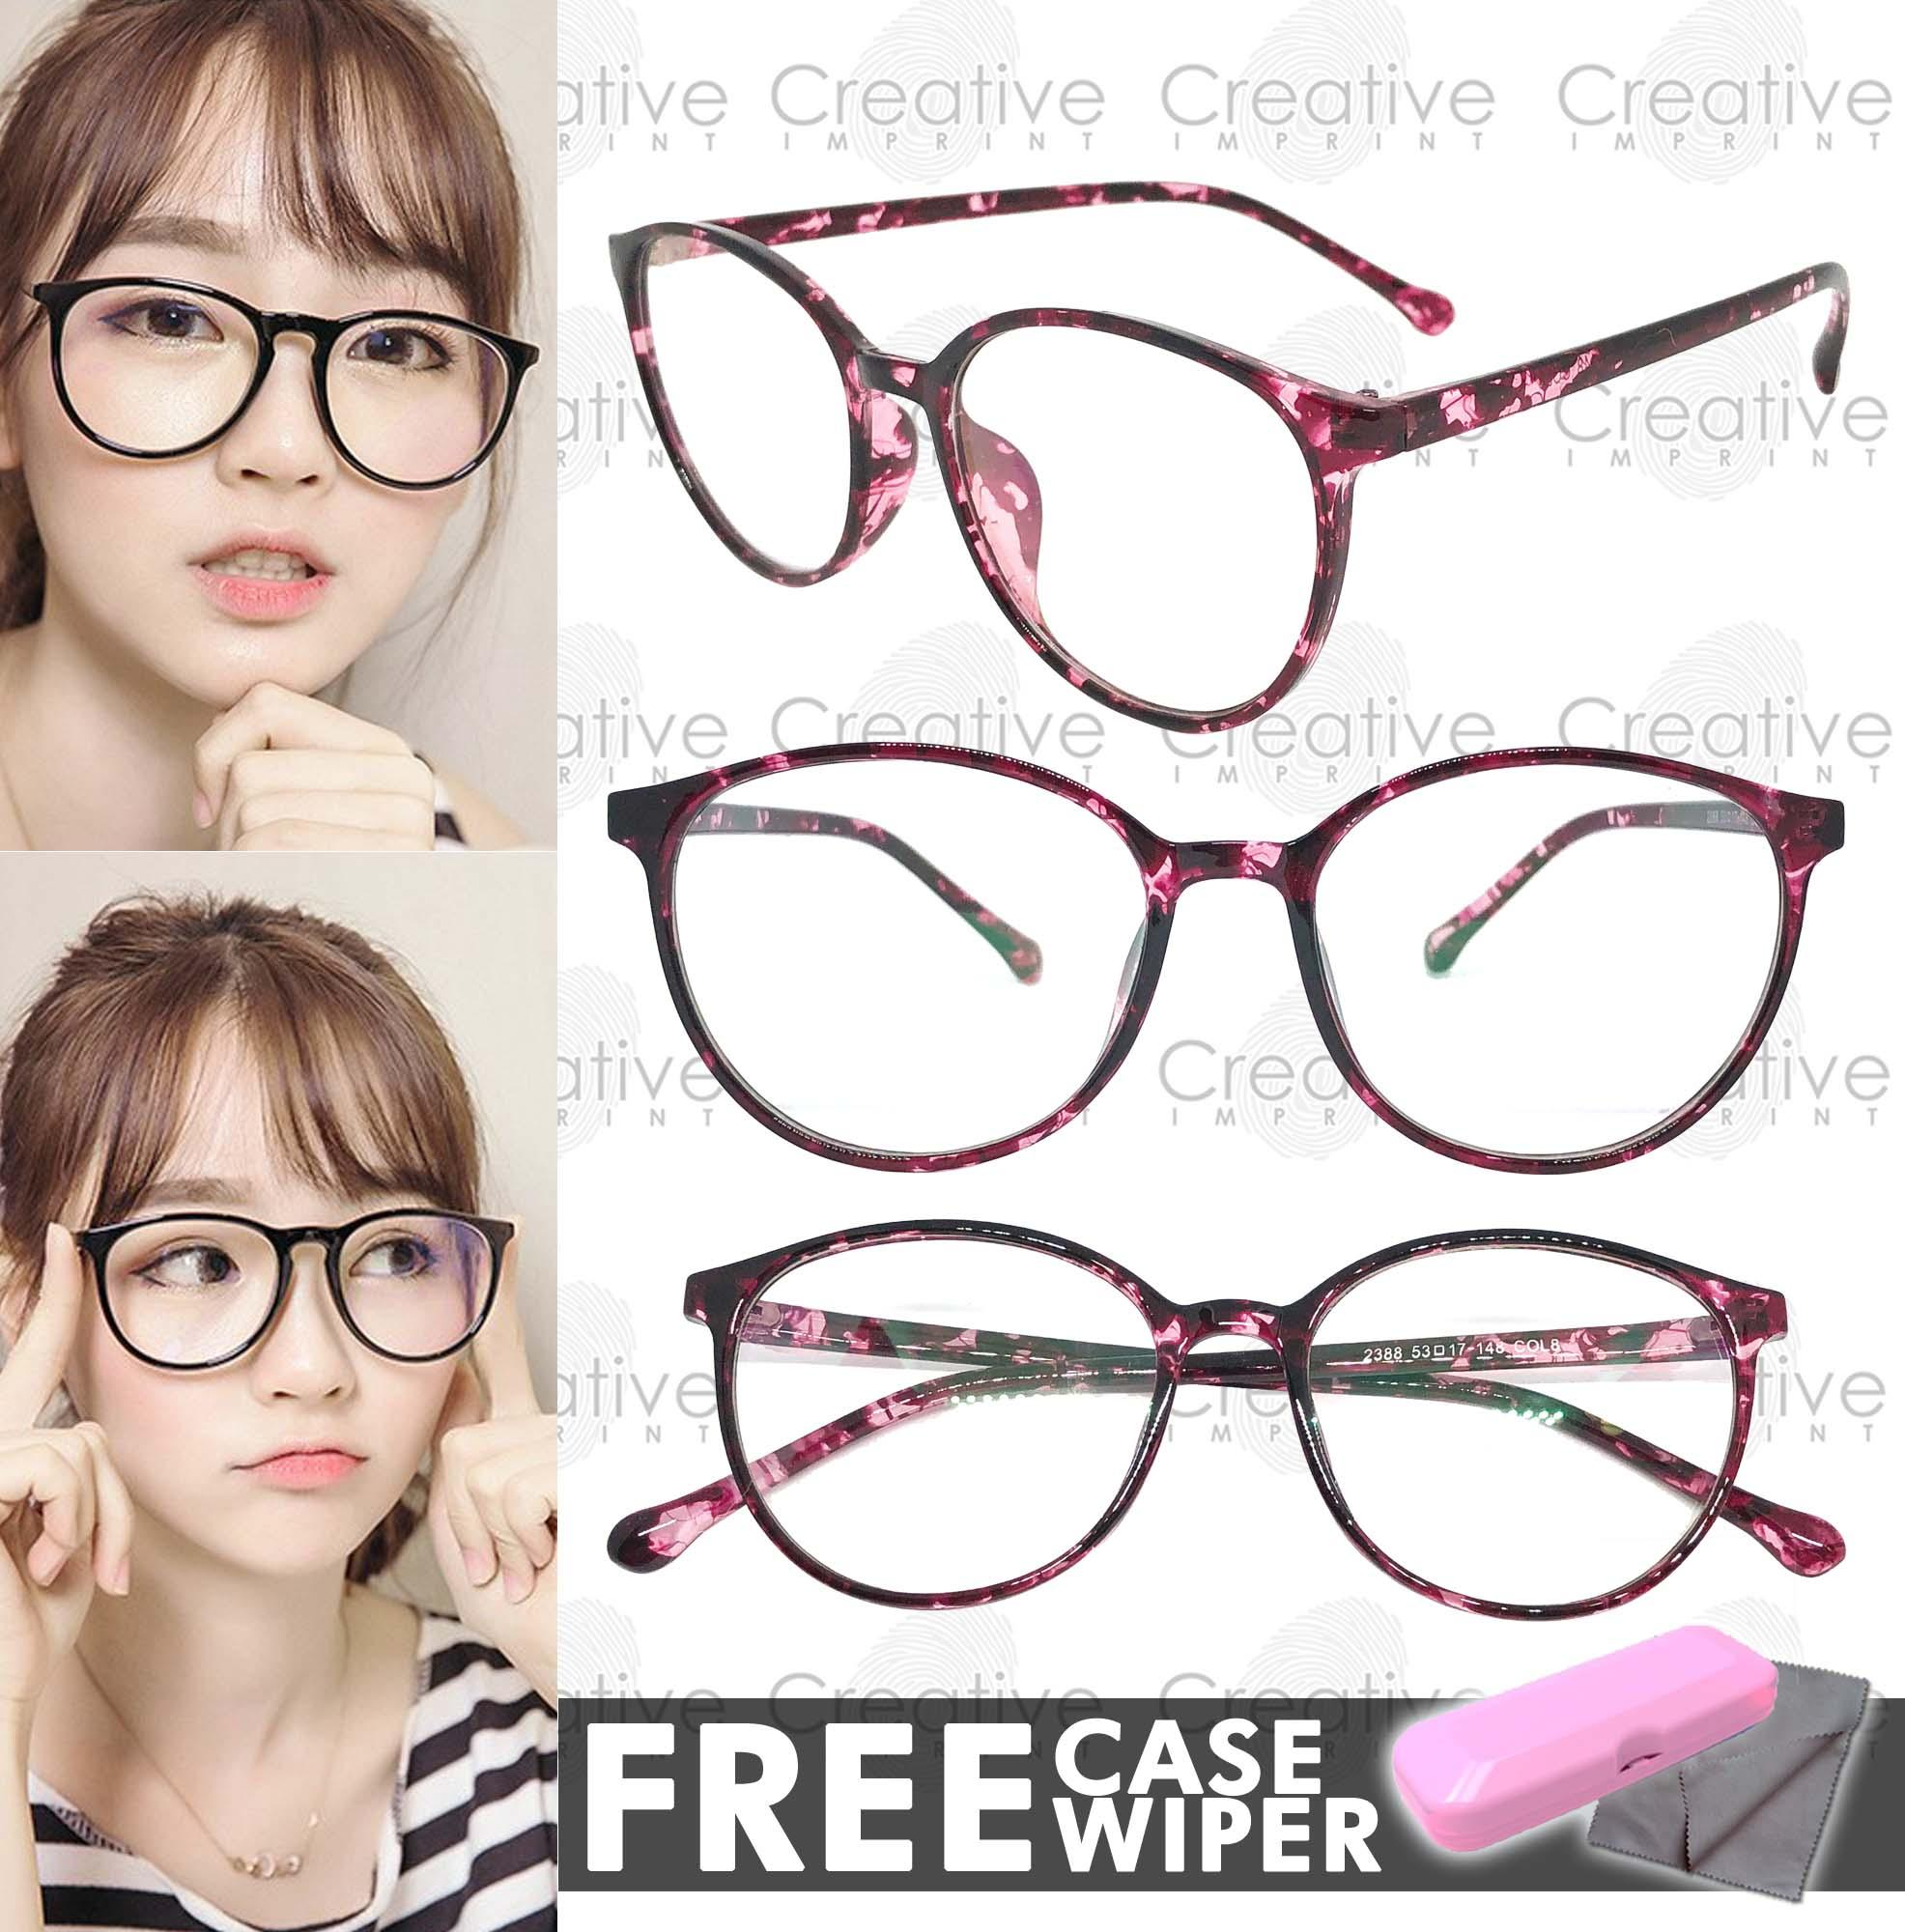 d1d189b2cc9 Creative Imprint Eyeglasses Anti-Radiation Lens ( 05 Animal Print Purple)  Anti-